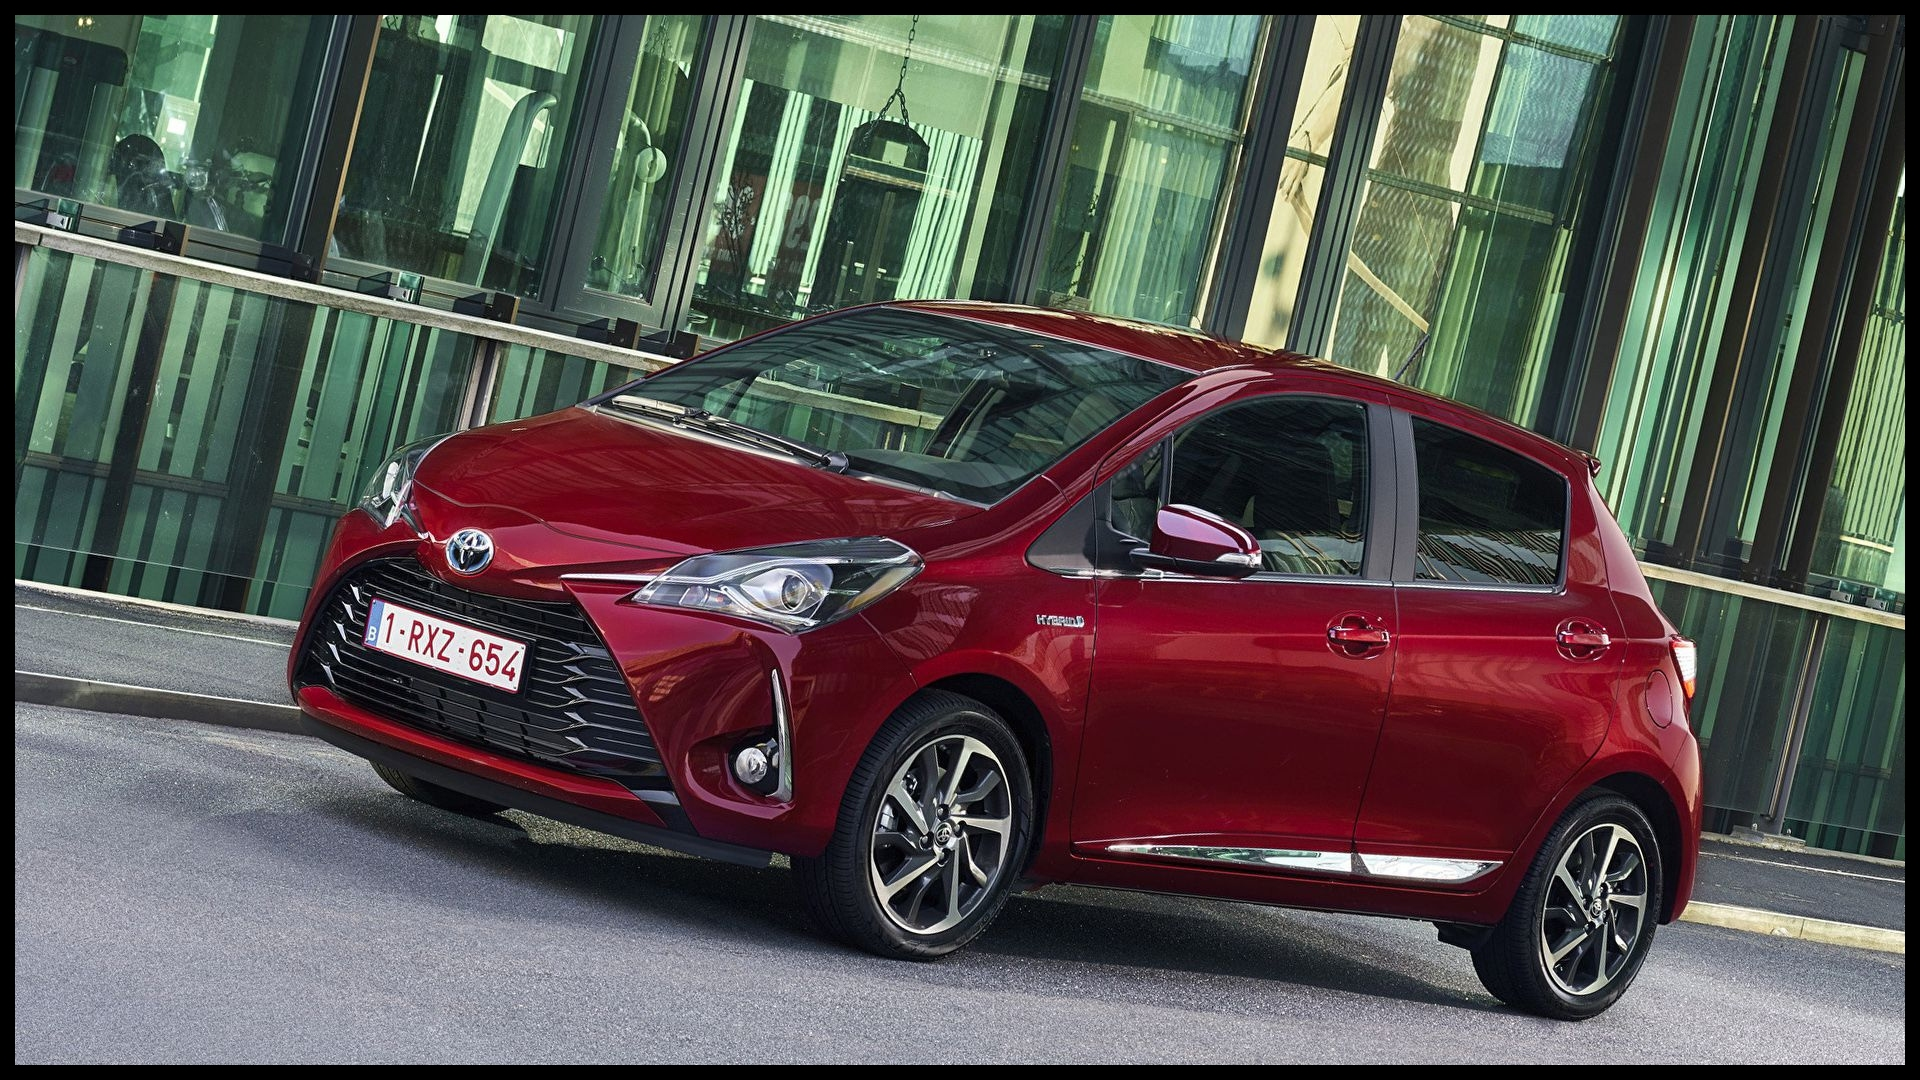 New 2019 toyota Auris Release Date Inspirational New 2019 toyota Yaris Concept